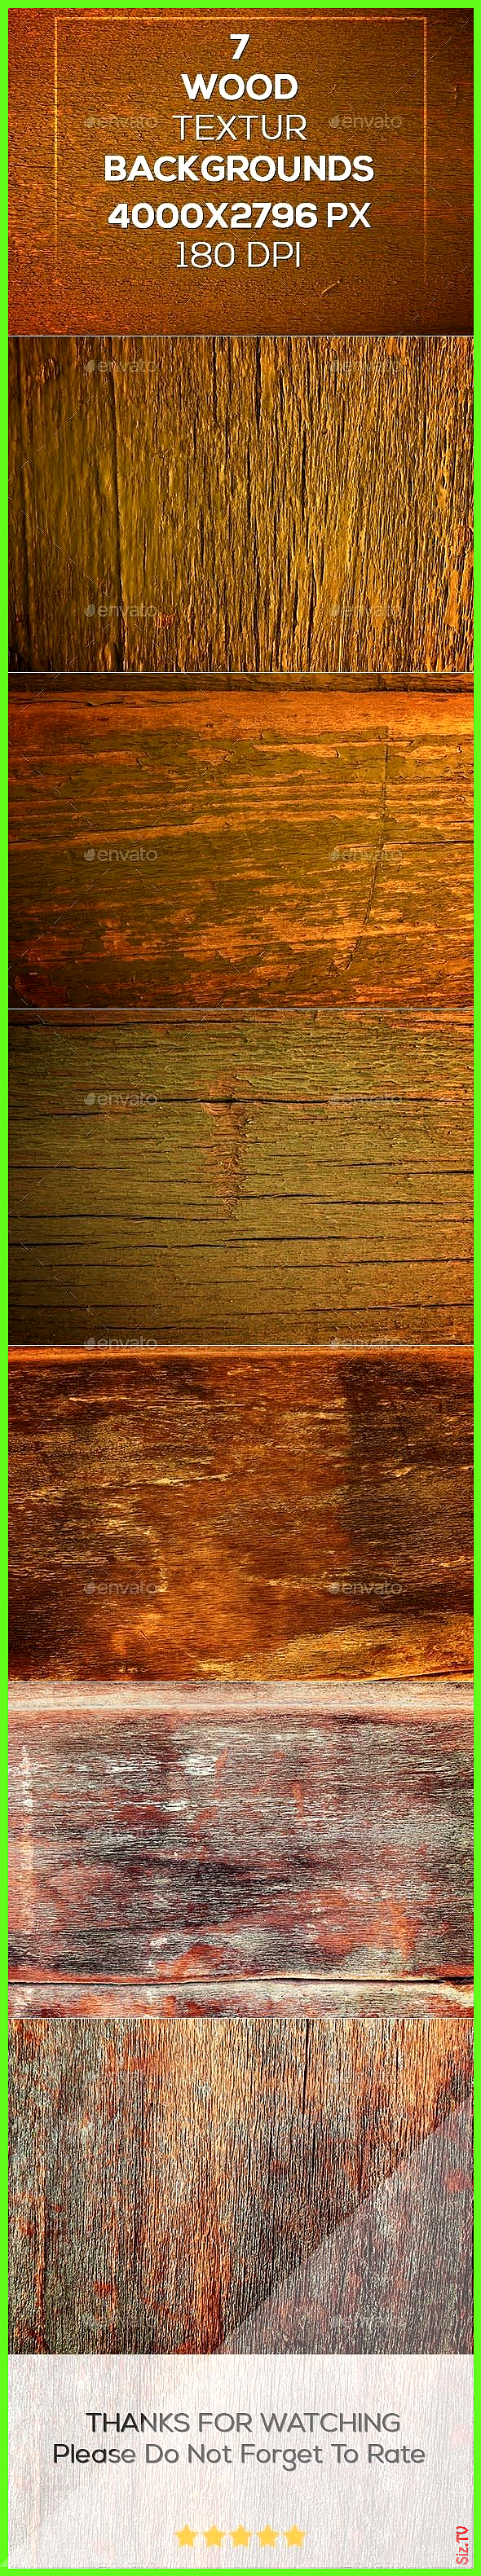 7 Wood Texture Backgrounds woodtexturebackground 7 Wood Texture Backgrounds AD Wood Ad Texture Backgrounds 7 Wood Texture Backgrounds woodtexturebackground 7 Wood Texture Backgrounds AD Wood Ad Texture Backgrounds toysblog toysblog 7 Wood Texture Backgrounds woodtexturebackground 7 Wood Texture Backgrounds AD Wood Ad Texture Backgrounds Save Images toysblog0355 7 Wood Texture Backgrounds woodtexturebackground 7 Wood Texture Backgro #backgrounds #flooringbackground #texture #woodtexturebackground #woodtexturebackground